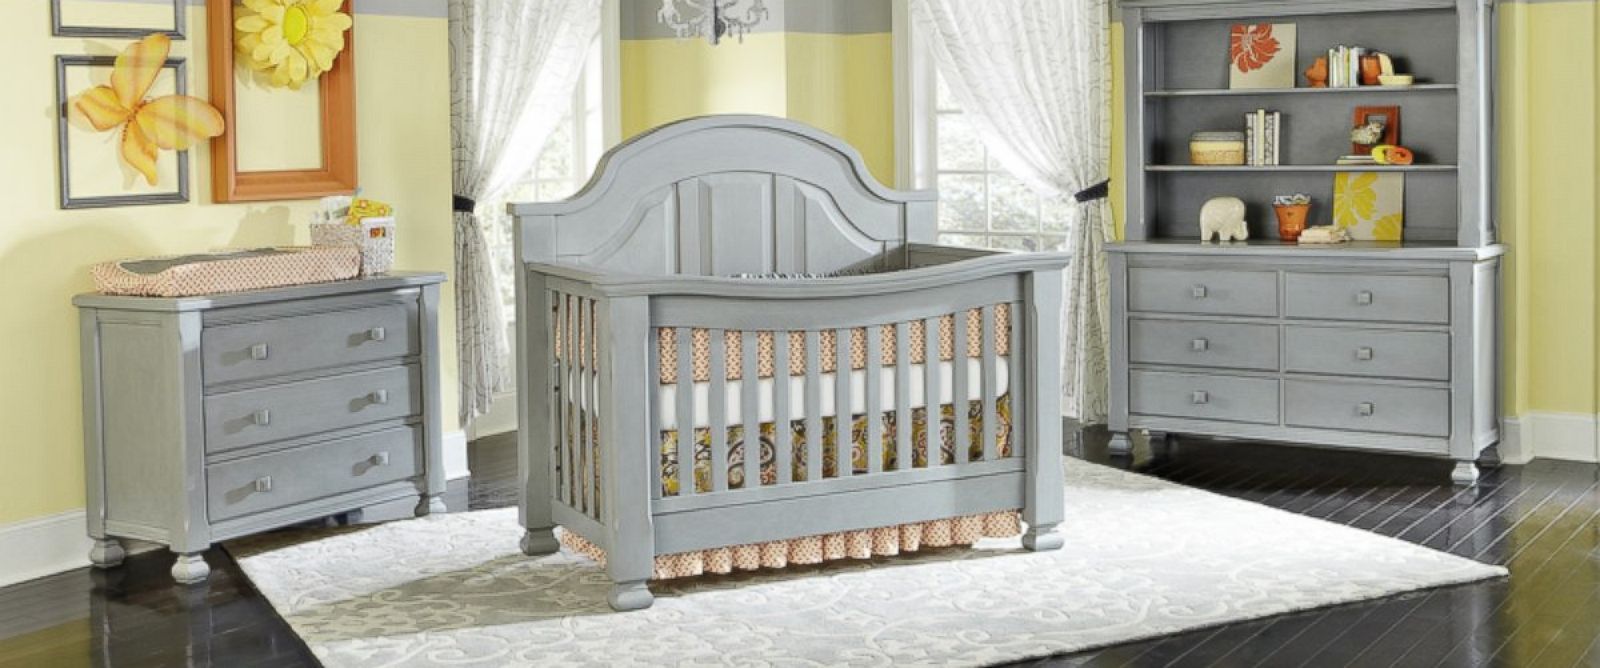 """PHOTO: The Consumer Product Safety Commission has announced a recall of cribs, furniture and accessories from Babys Dream that were sold in a """"vintage grey paint finish"""" because the paint exceeds federal lead limits."""